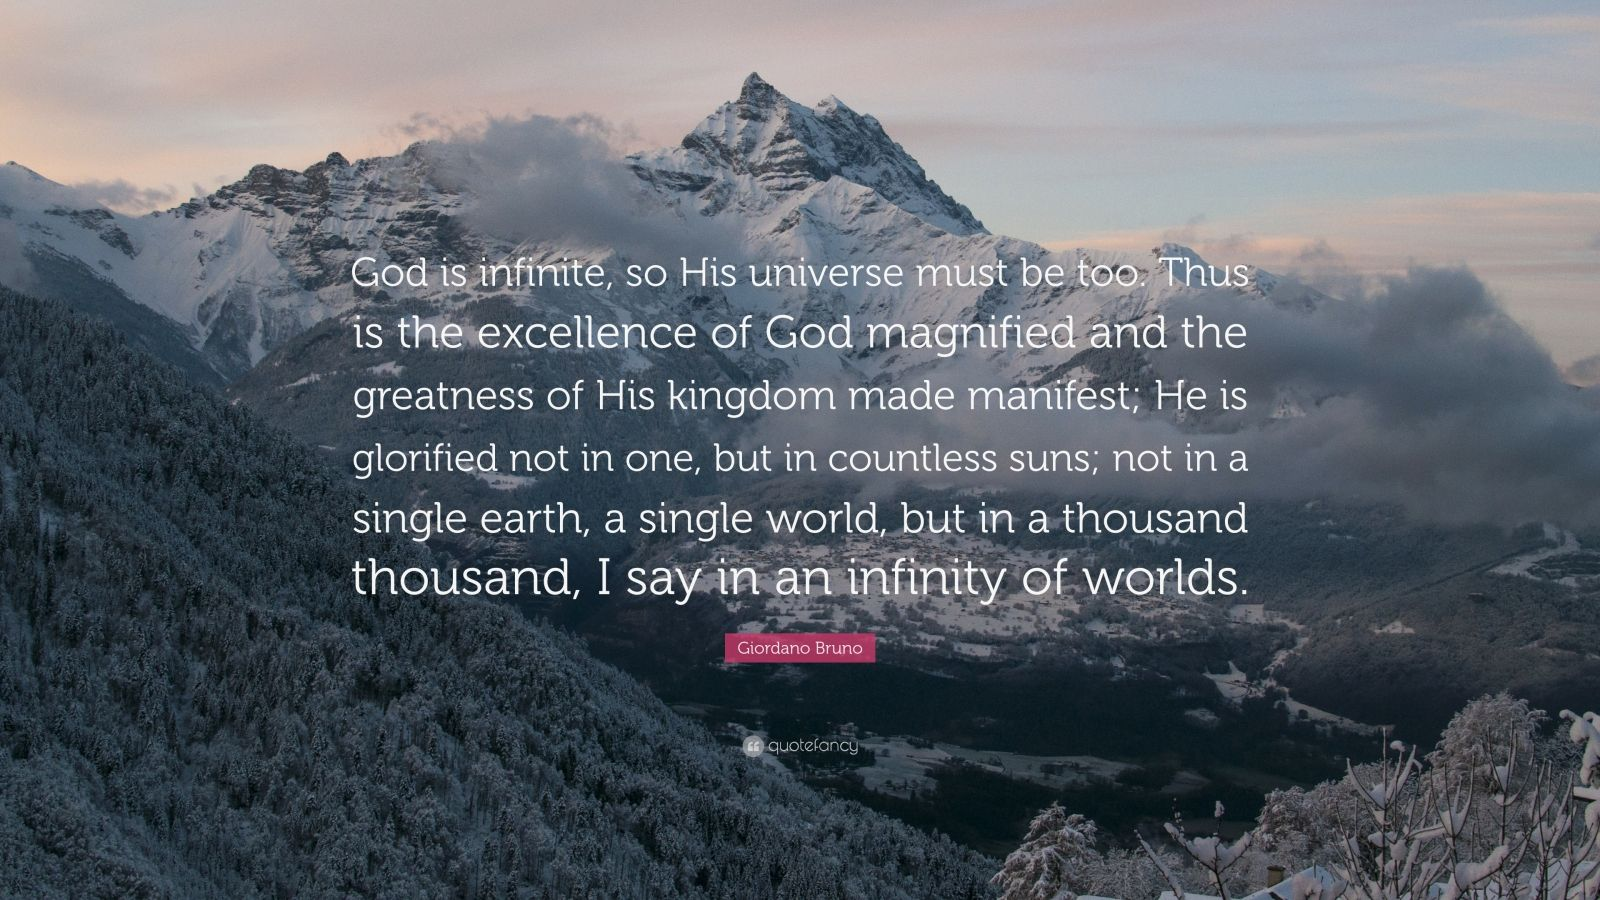 """Giordano Bruno Quote: """"God is infinite, so His universe must be too. Thus is the excellence of God magnified and the greatness of His kingdom made manifest; He is glorified not in one, but in countless suns; not in a single earth, a single world, but in a thousand thousand, I say in an infinity of worlds."""""""